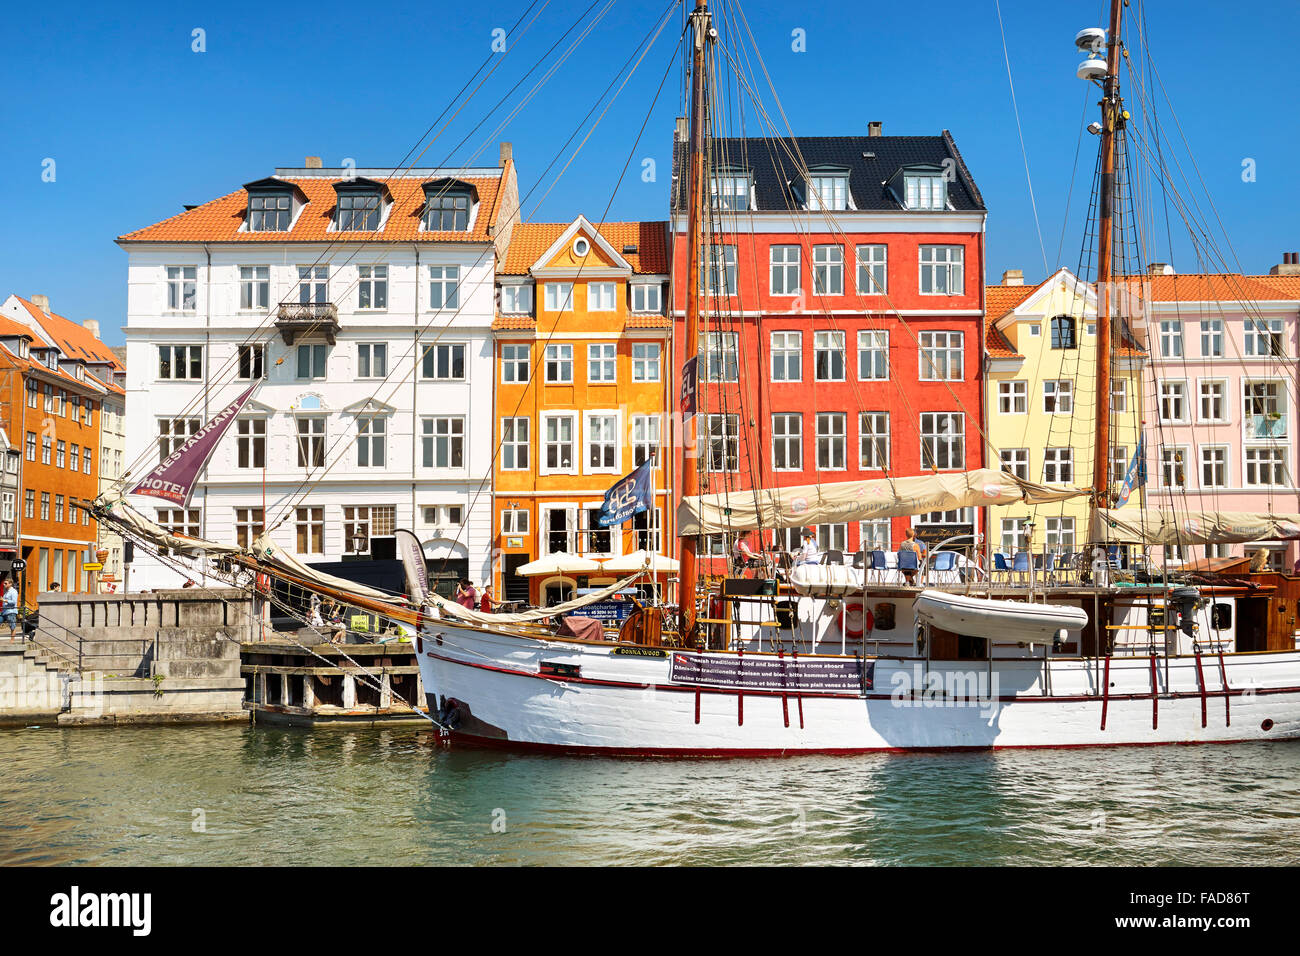 The boat in Nyhavn Canal, Copenhagen, Denmark - Stock Image